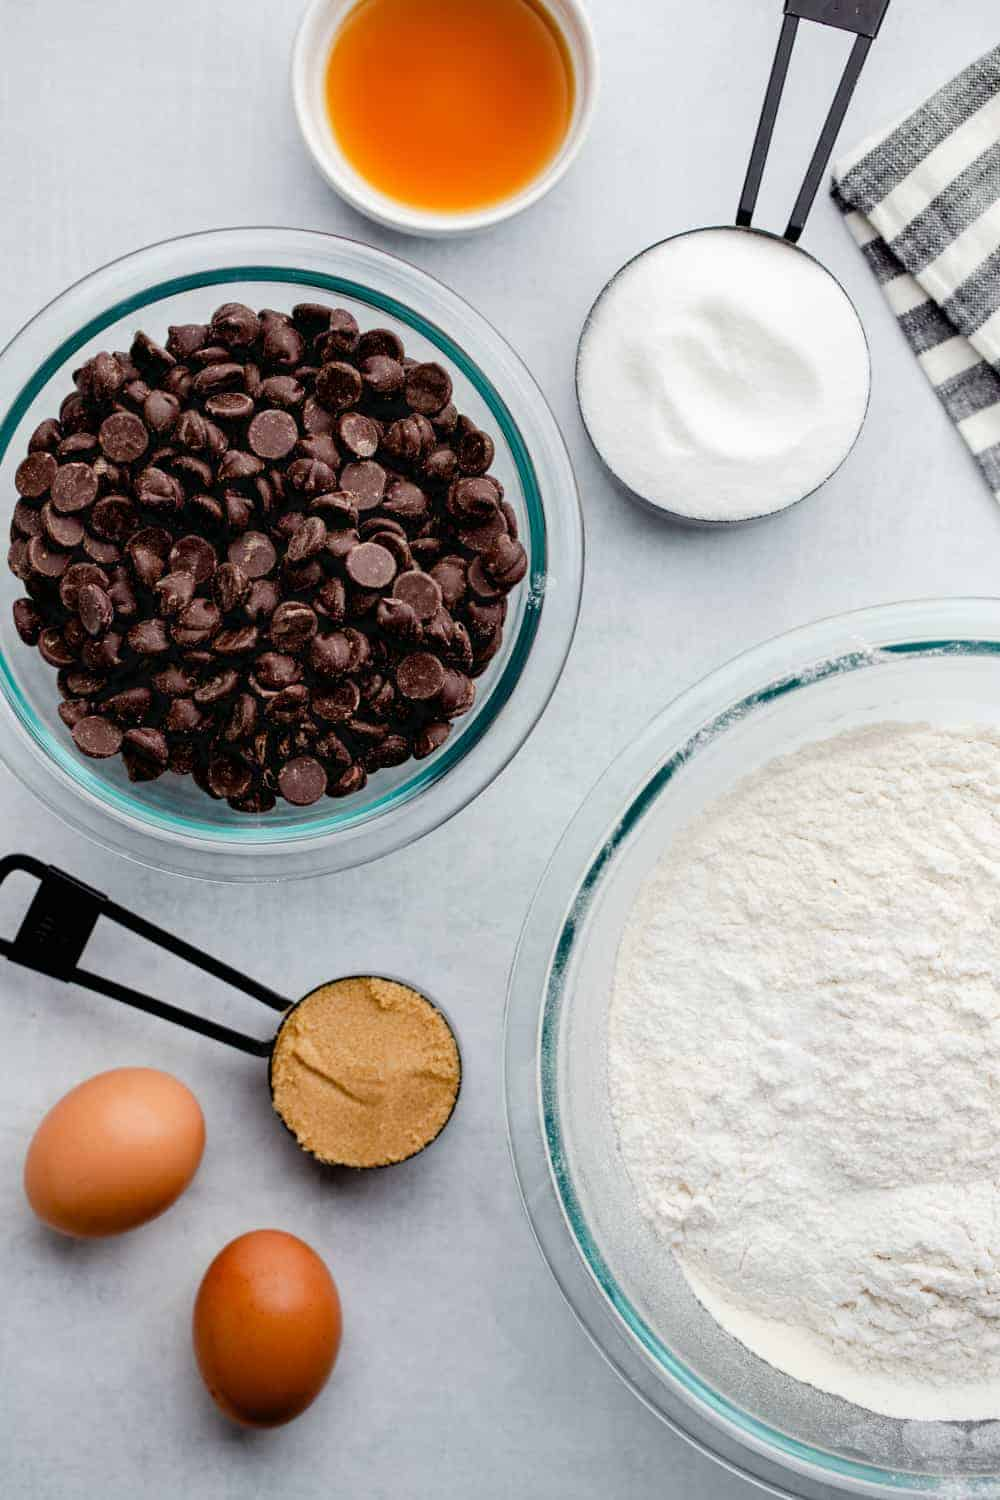 Don't forget to use the best chocolate when you make my favorite chocolate chip cookies. It makes a real difference in this New York Times recipe!